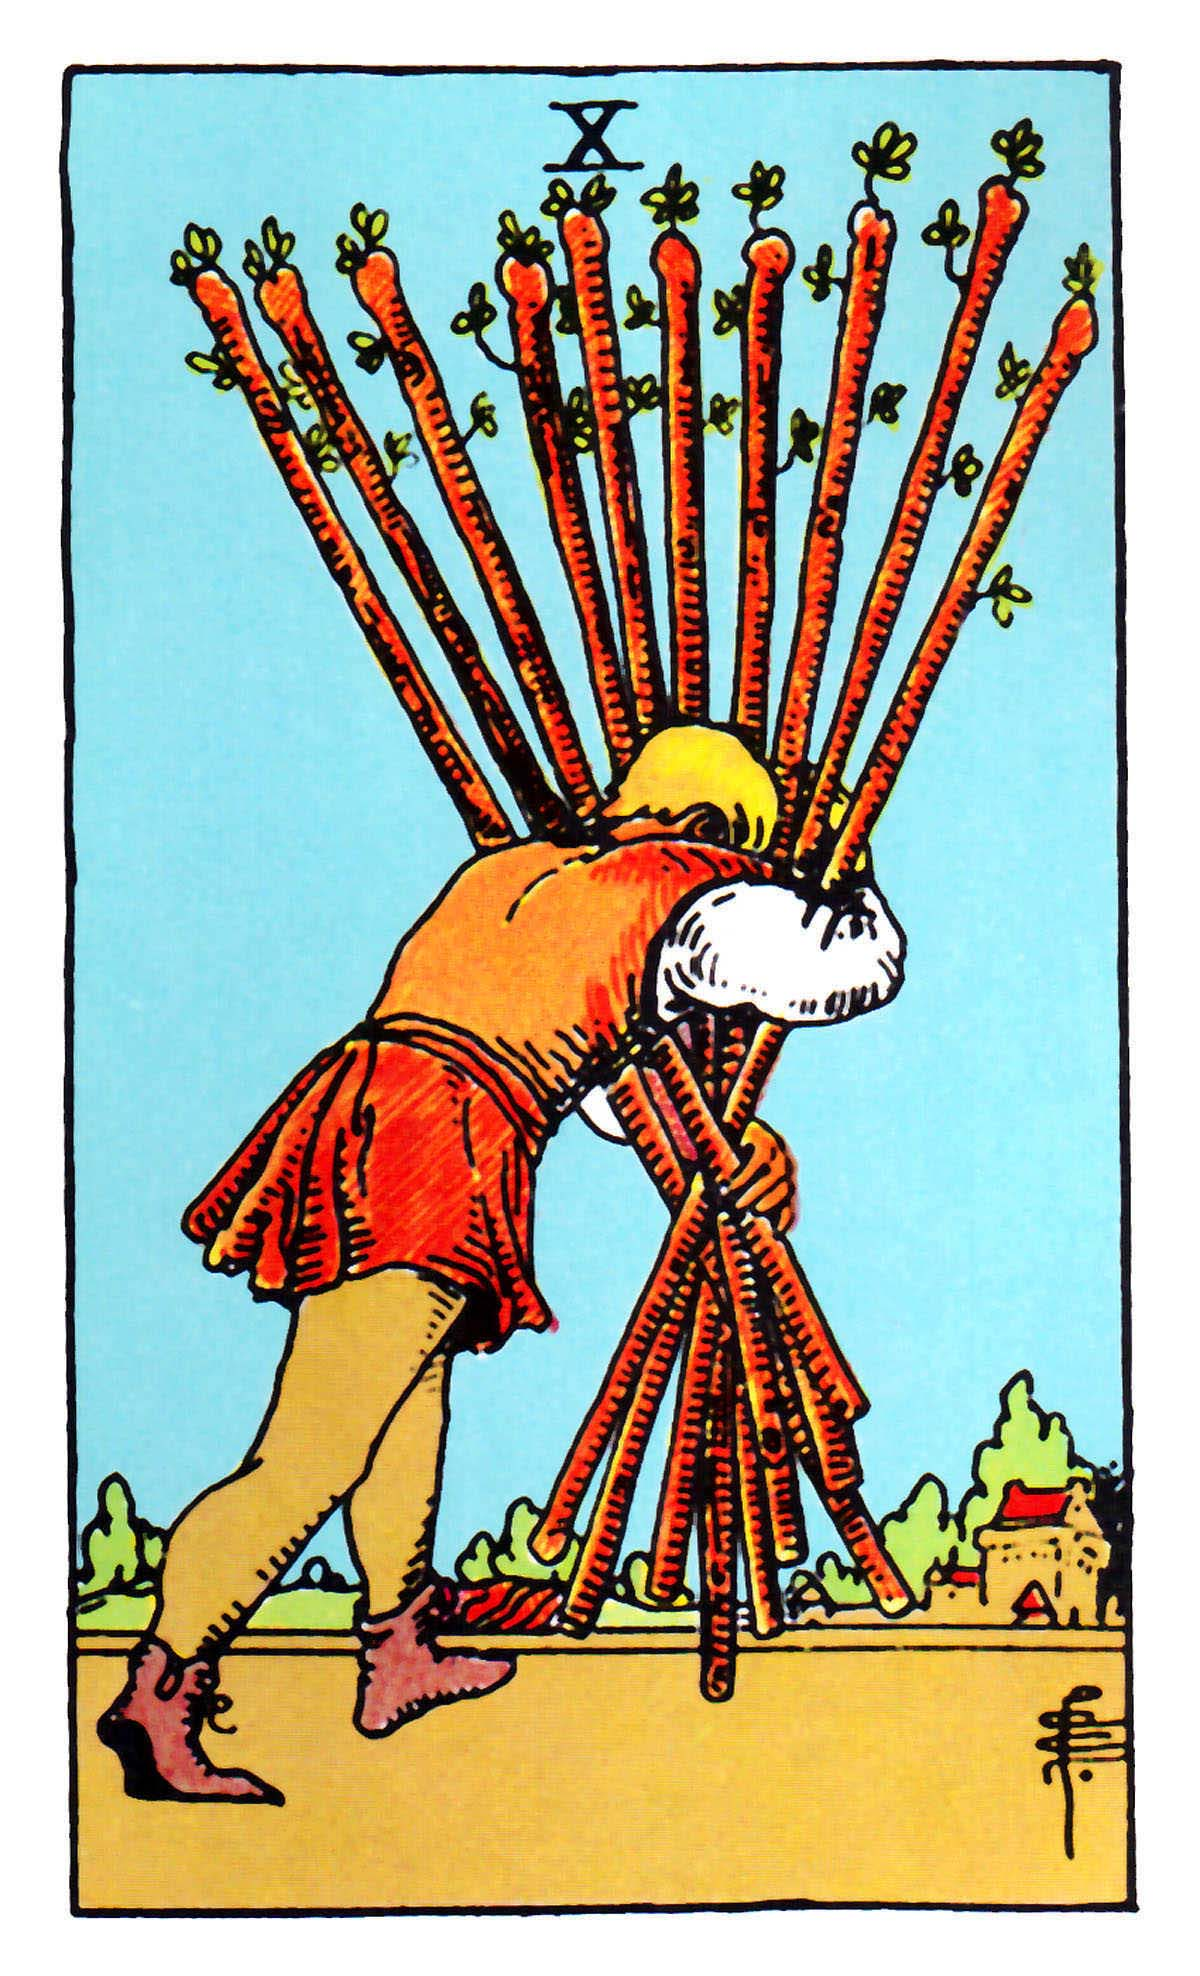 Tarot X The Wheel Of Fortune: The Wands Suit Tarot Cards Meanings In Readings